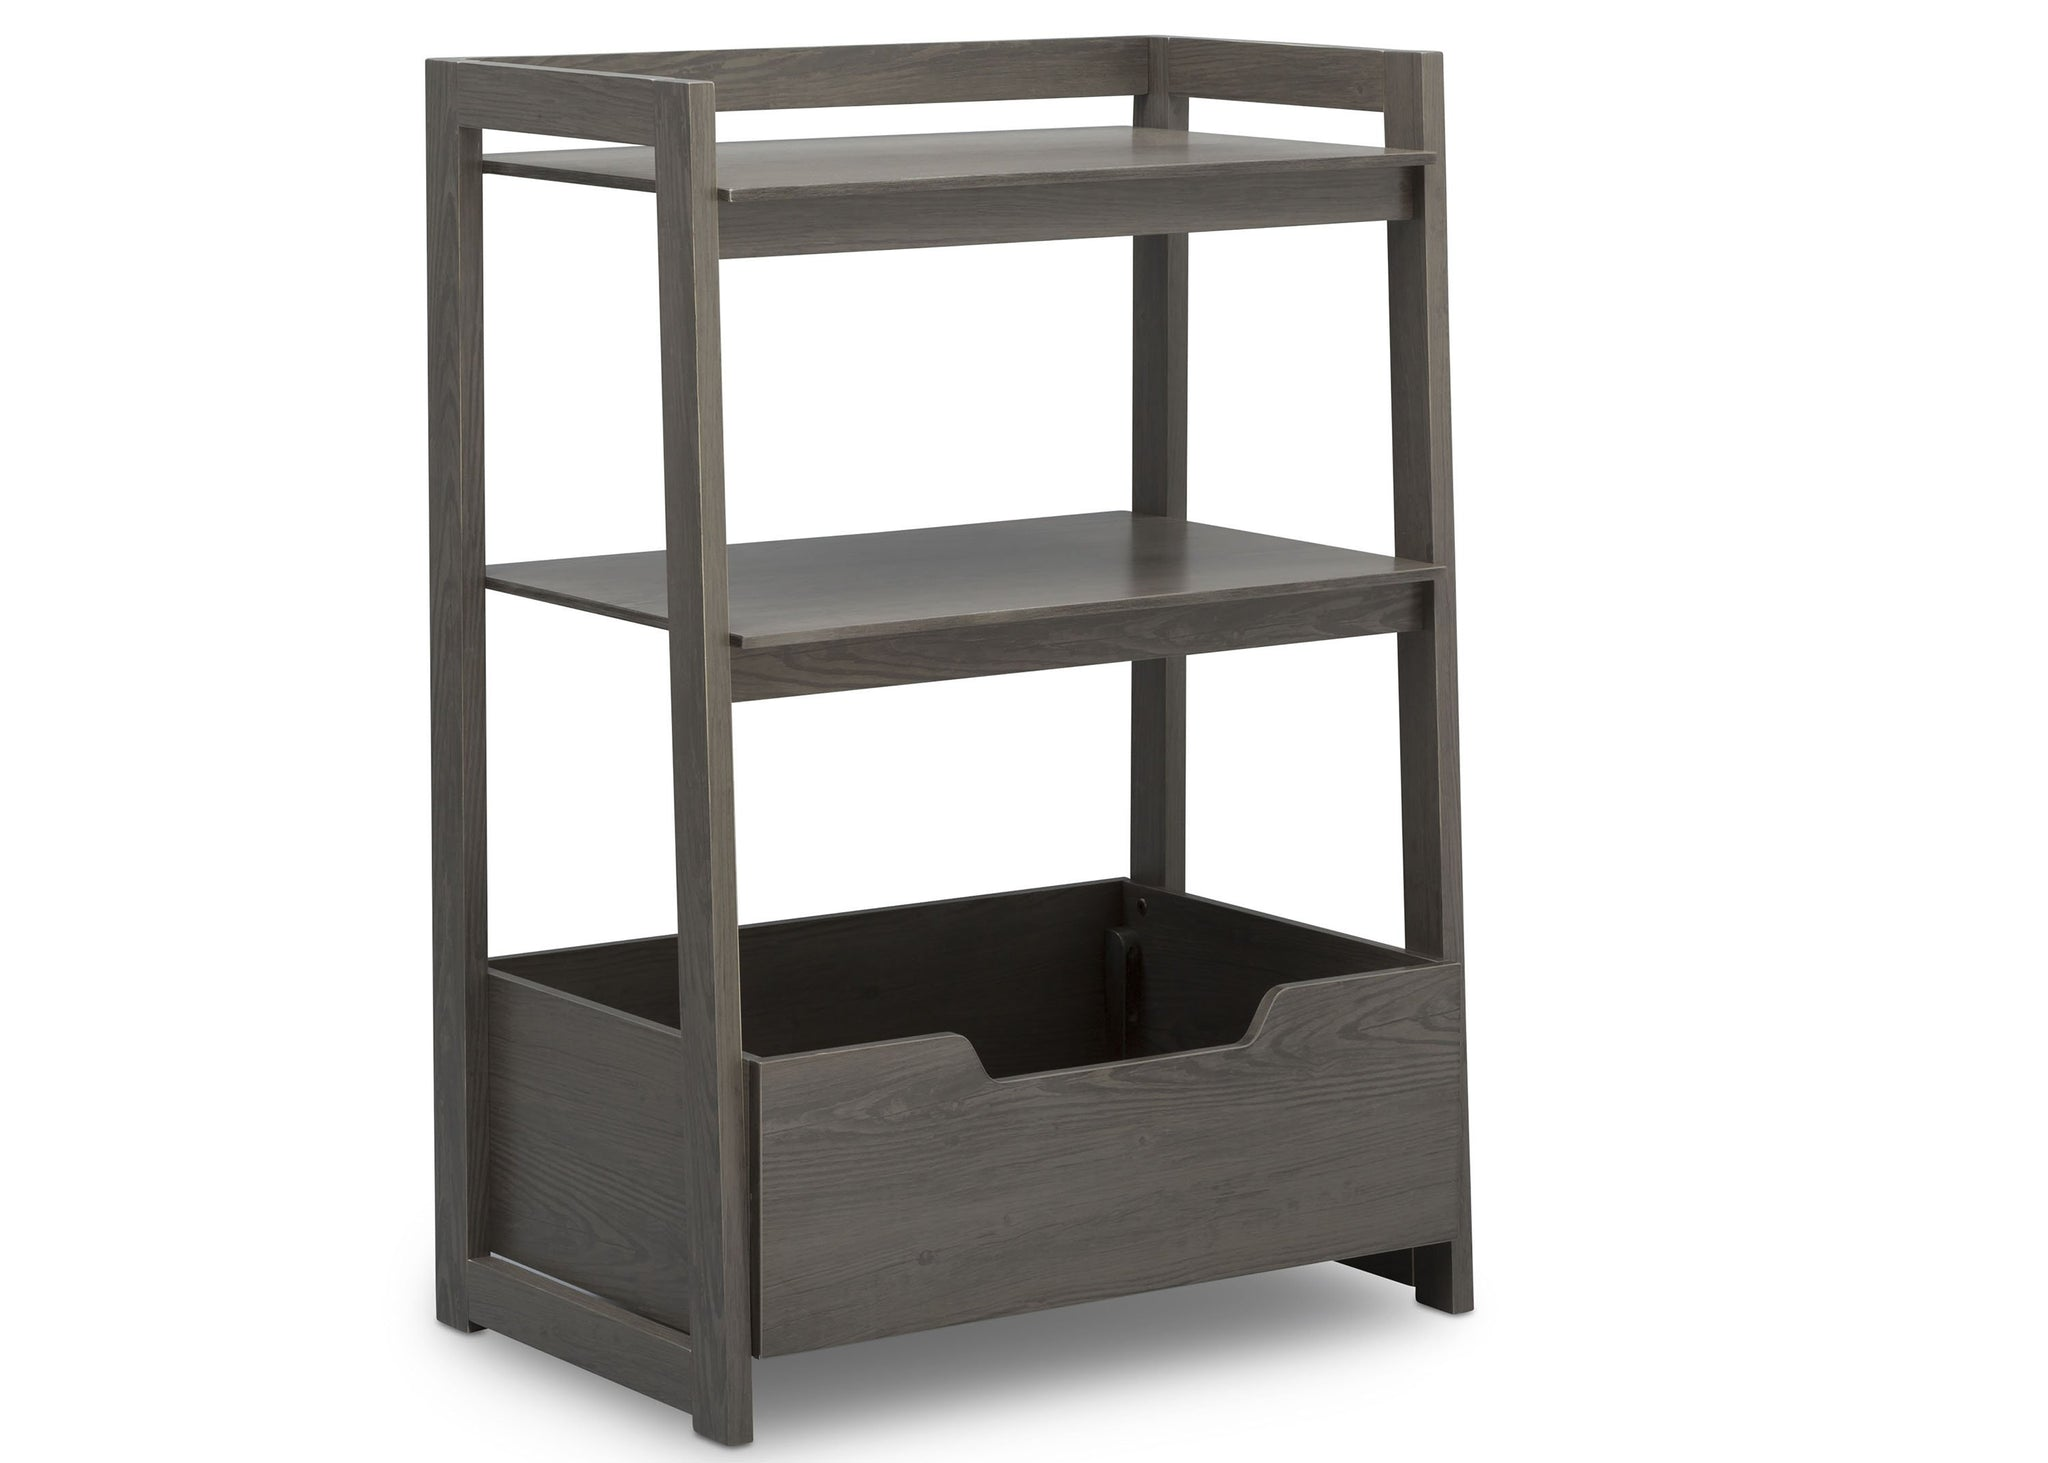 Delta Children Crafted Grey (1333) Gateway Small Laddershelf (W101452), Right Facing Silo, c2c